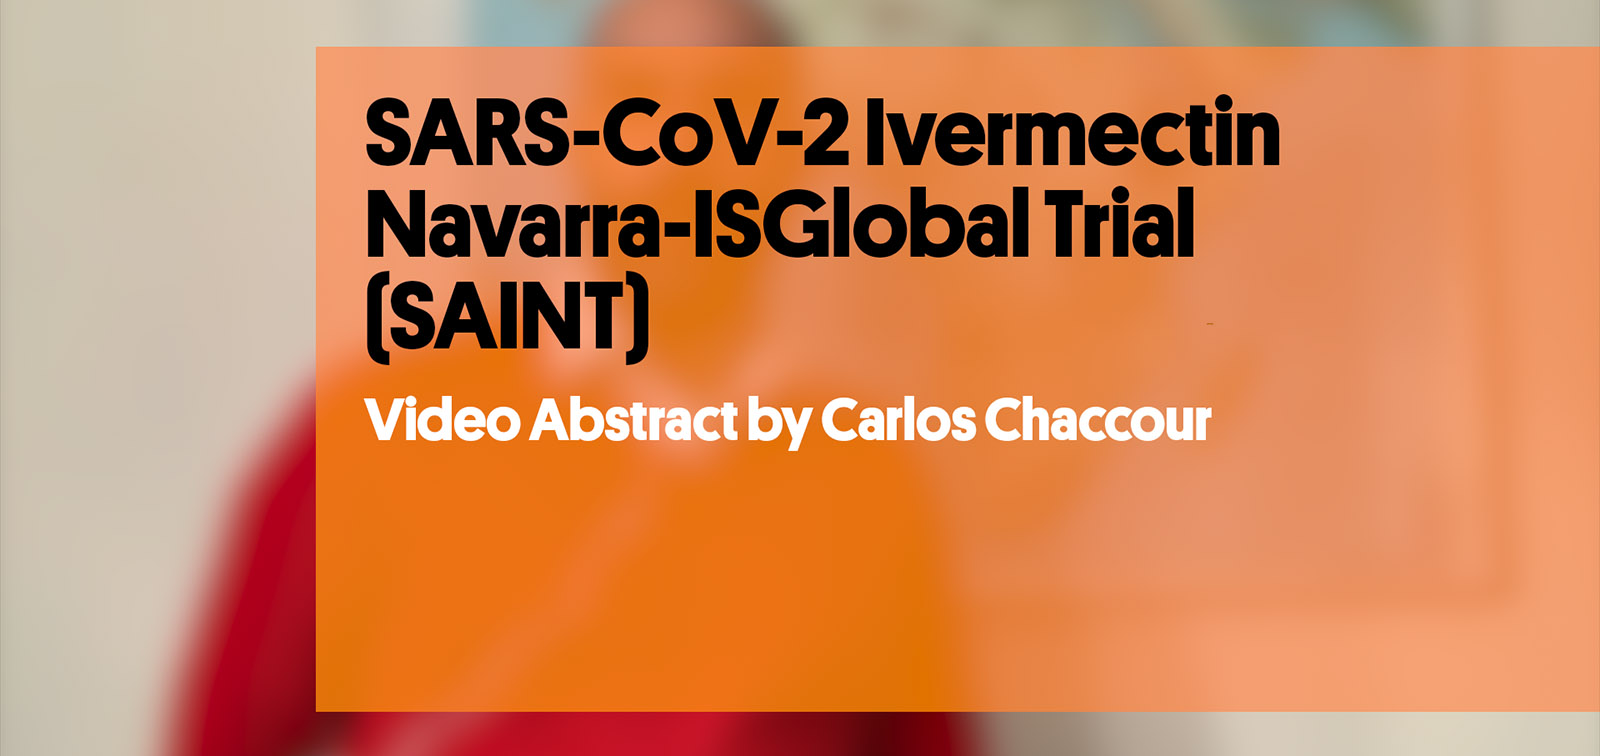 SAINT: A Pilot Study to Evaluate the Potential of Ivermectin to Reduce COVID-19 Transmission